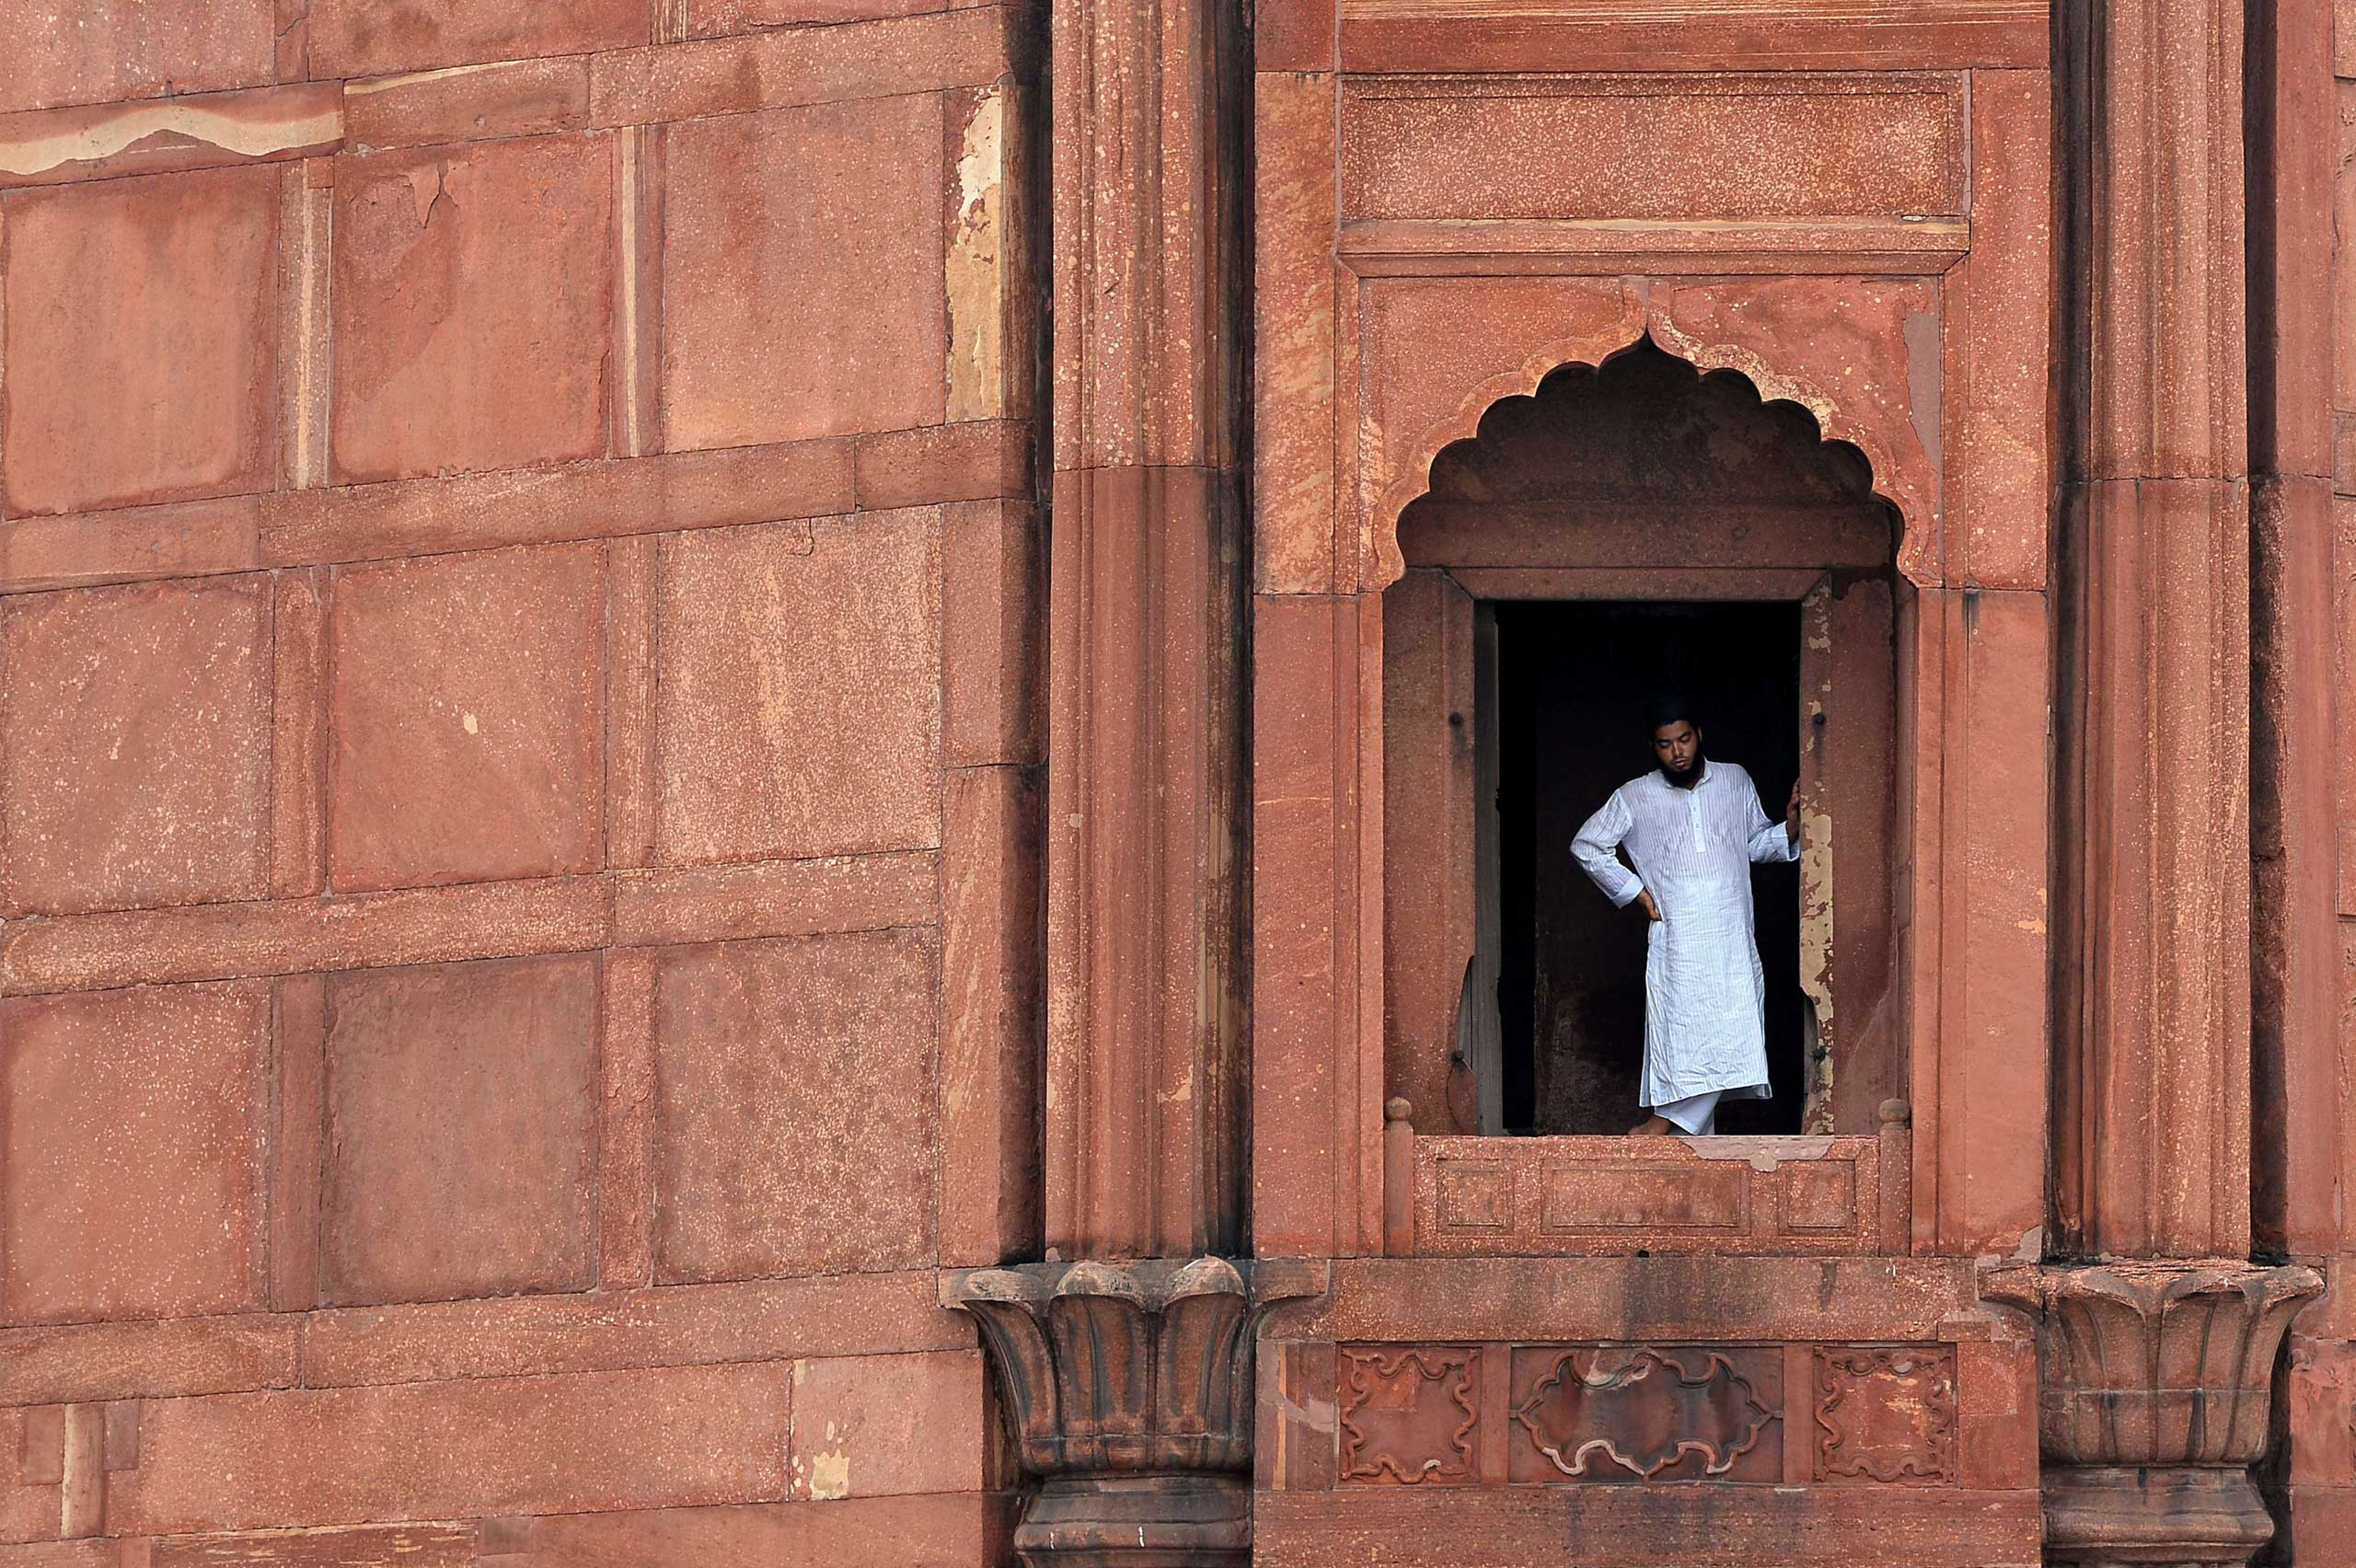 An Indian Muslim devotee looks on before the start of Jummat-Ul-Vida prayers on the last Friday of the month of Ramadan ahead of the Eid al-Fitr holiday at Jama Masjid Mosque in the old quarters of New Delhi on July 17, 2015.